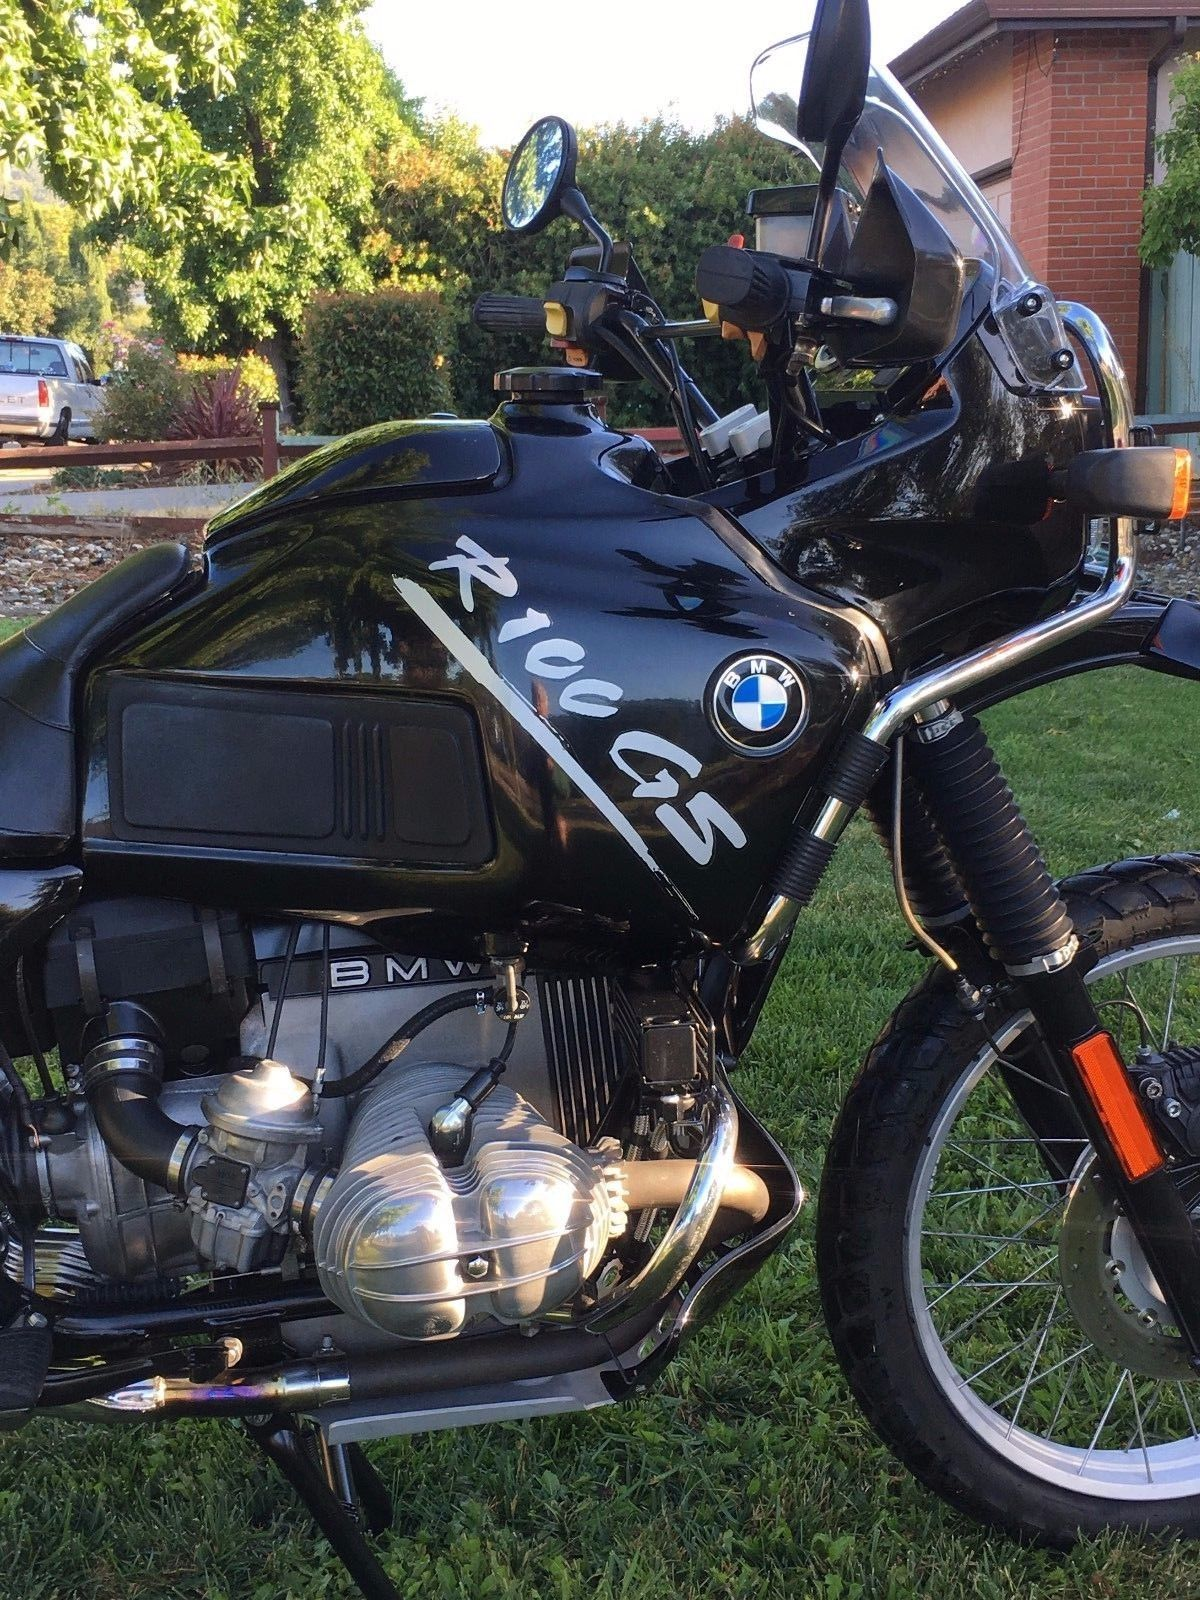 Restored Bmw R100gs 1995 Photographs At Classic Bikes